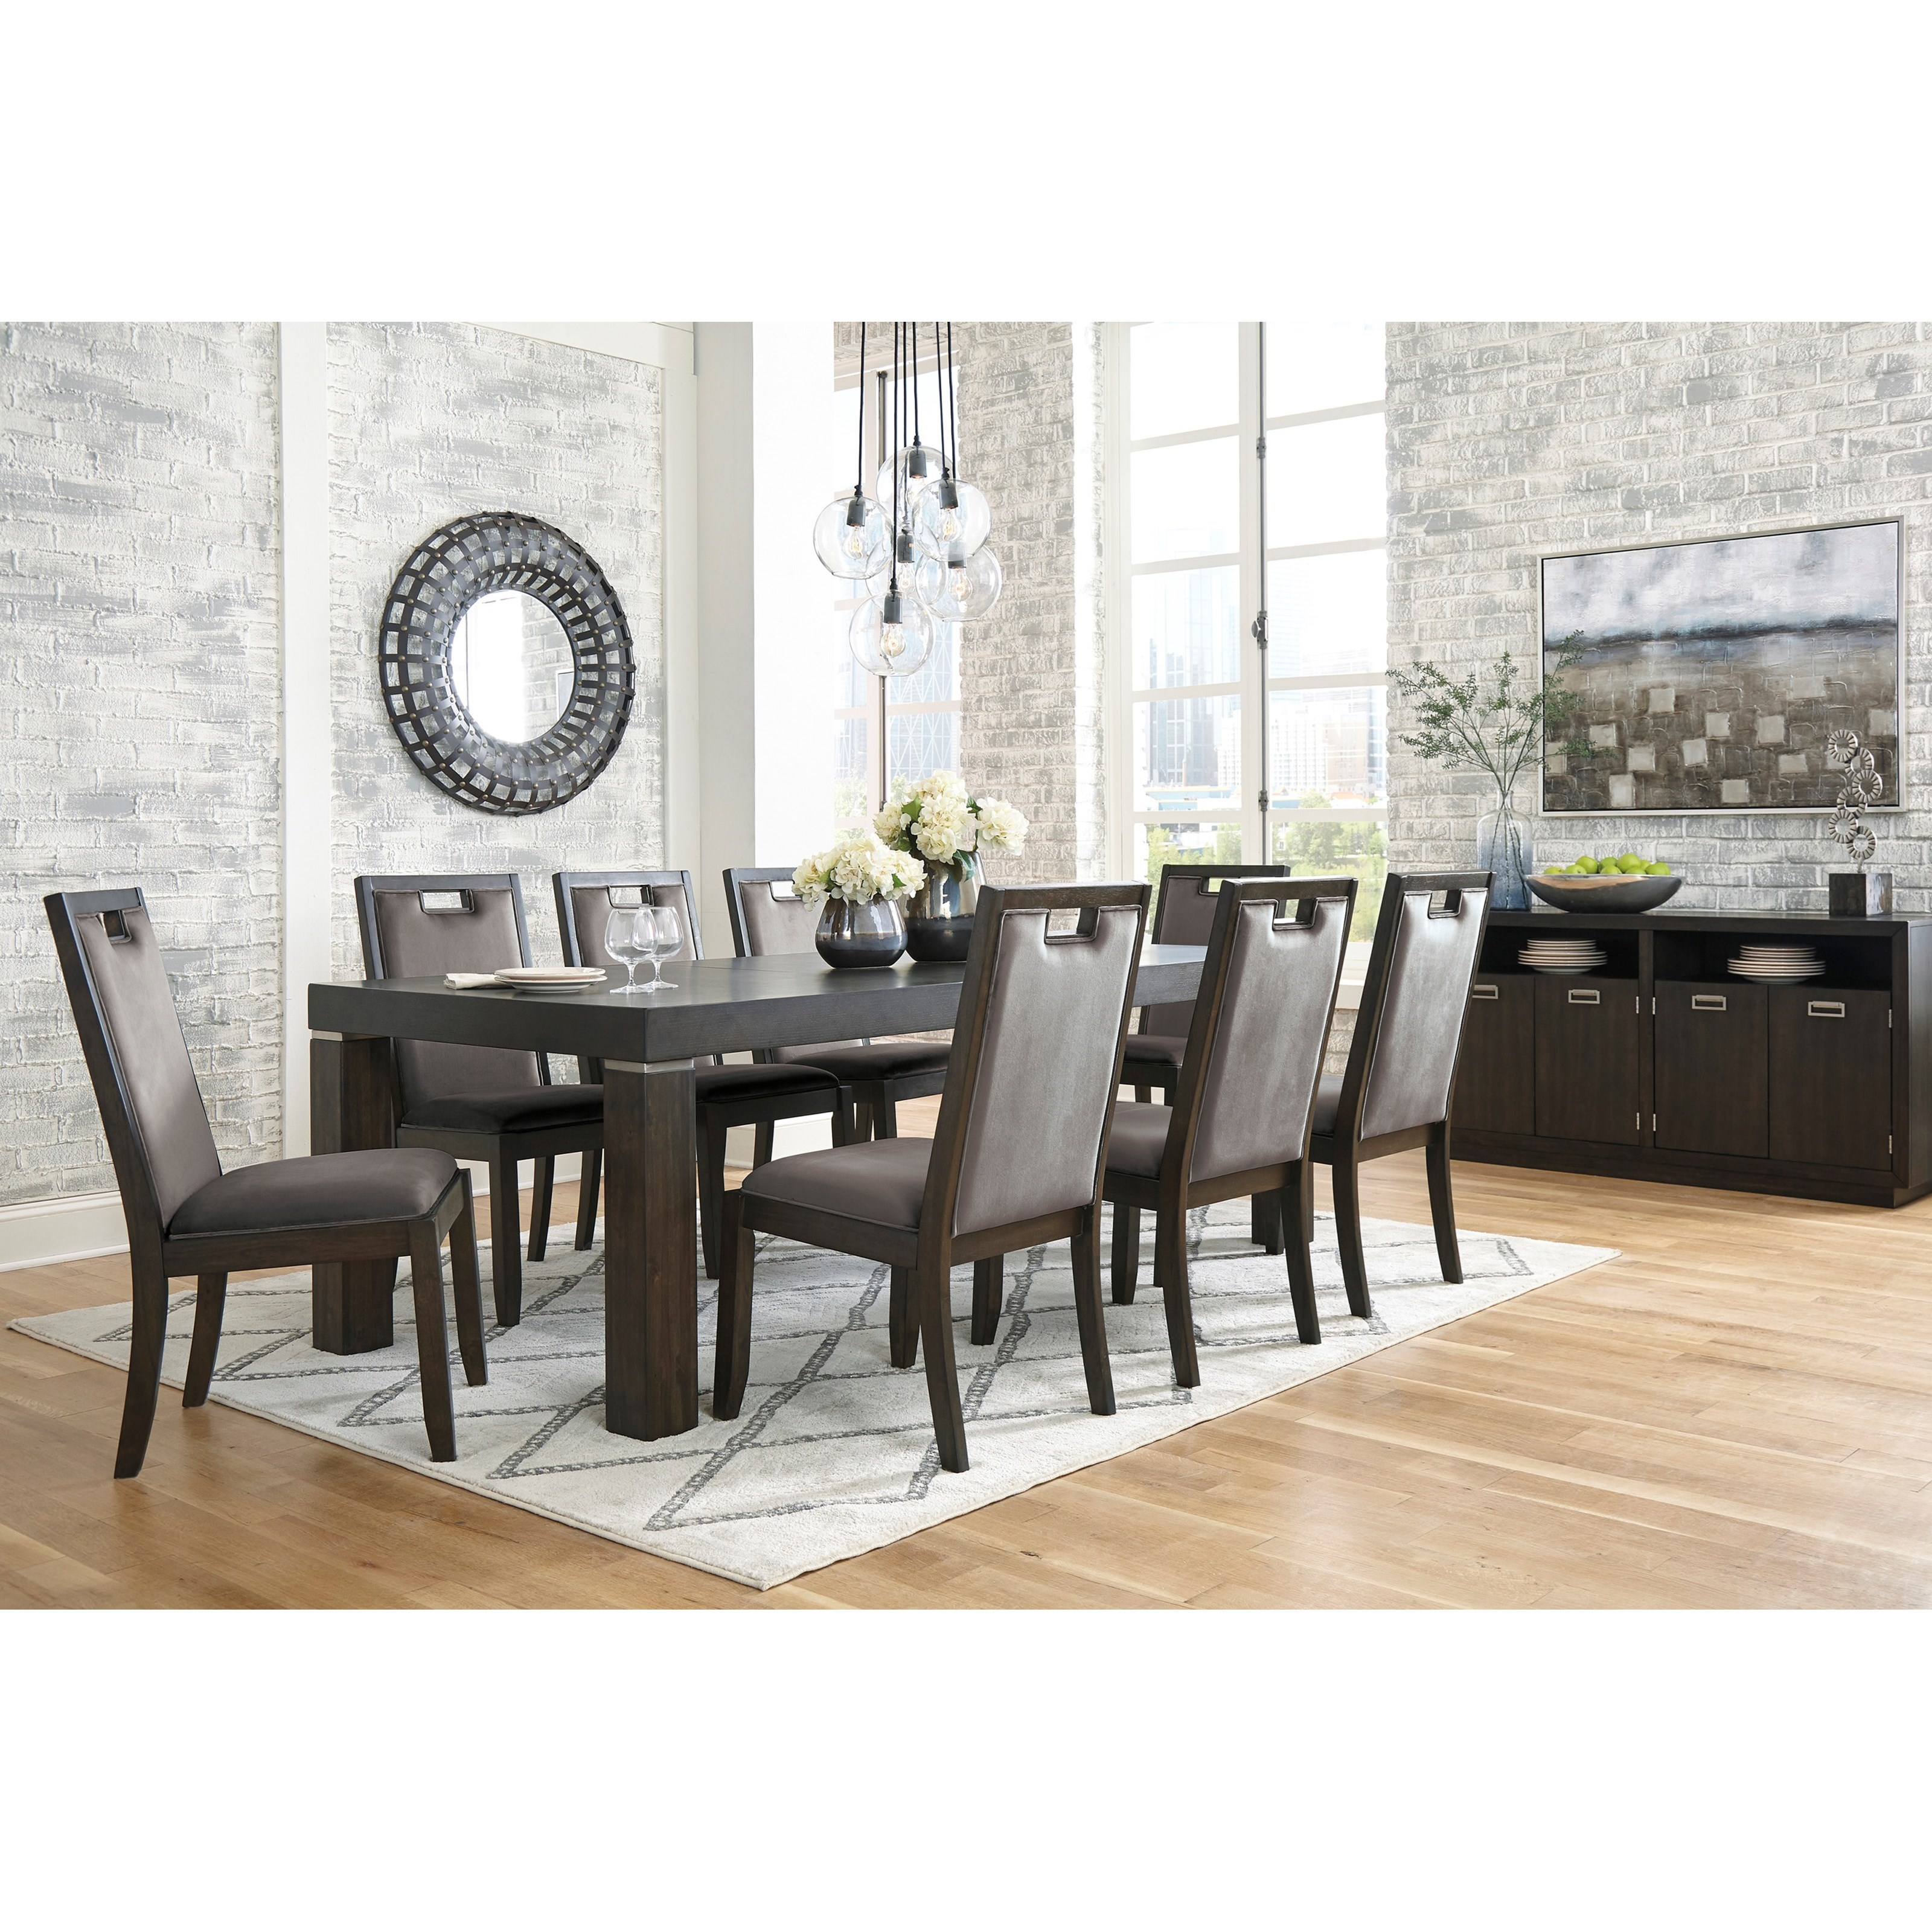 Hyndell Dining Room Group by Signature Design by Ashley at Darvin Furniture